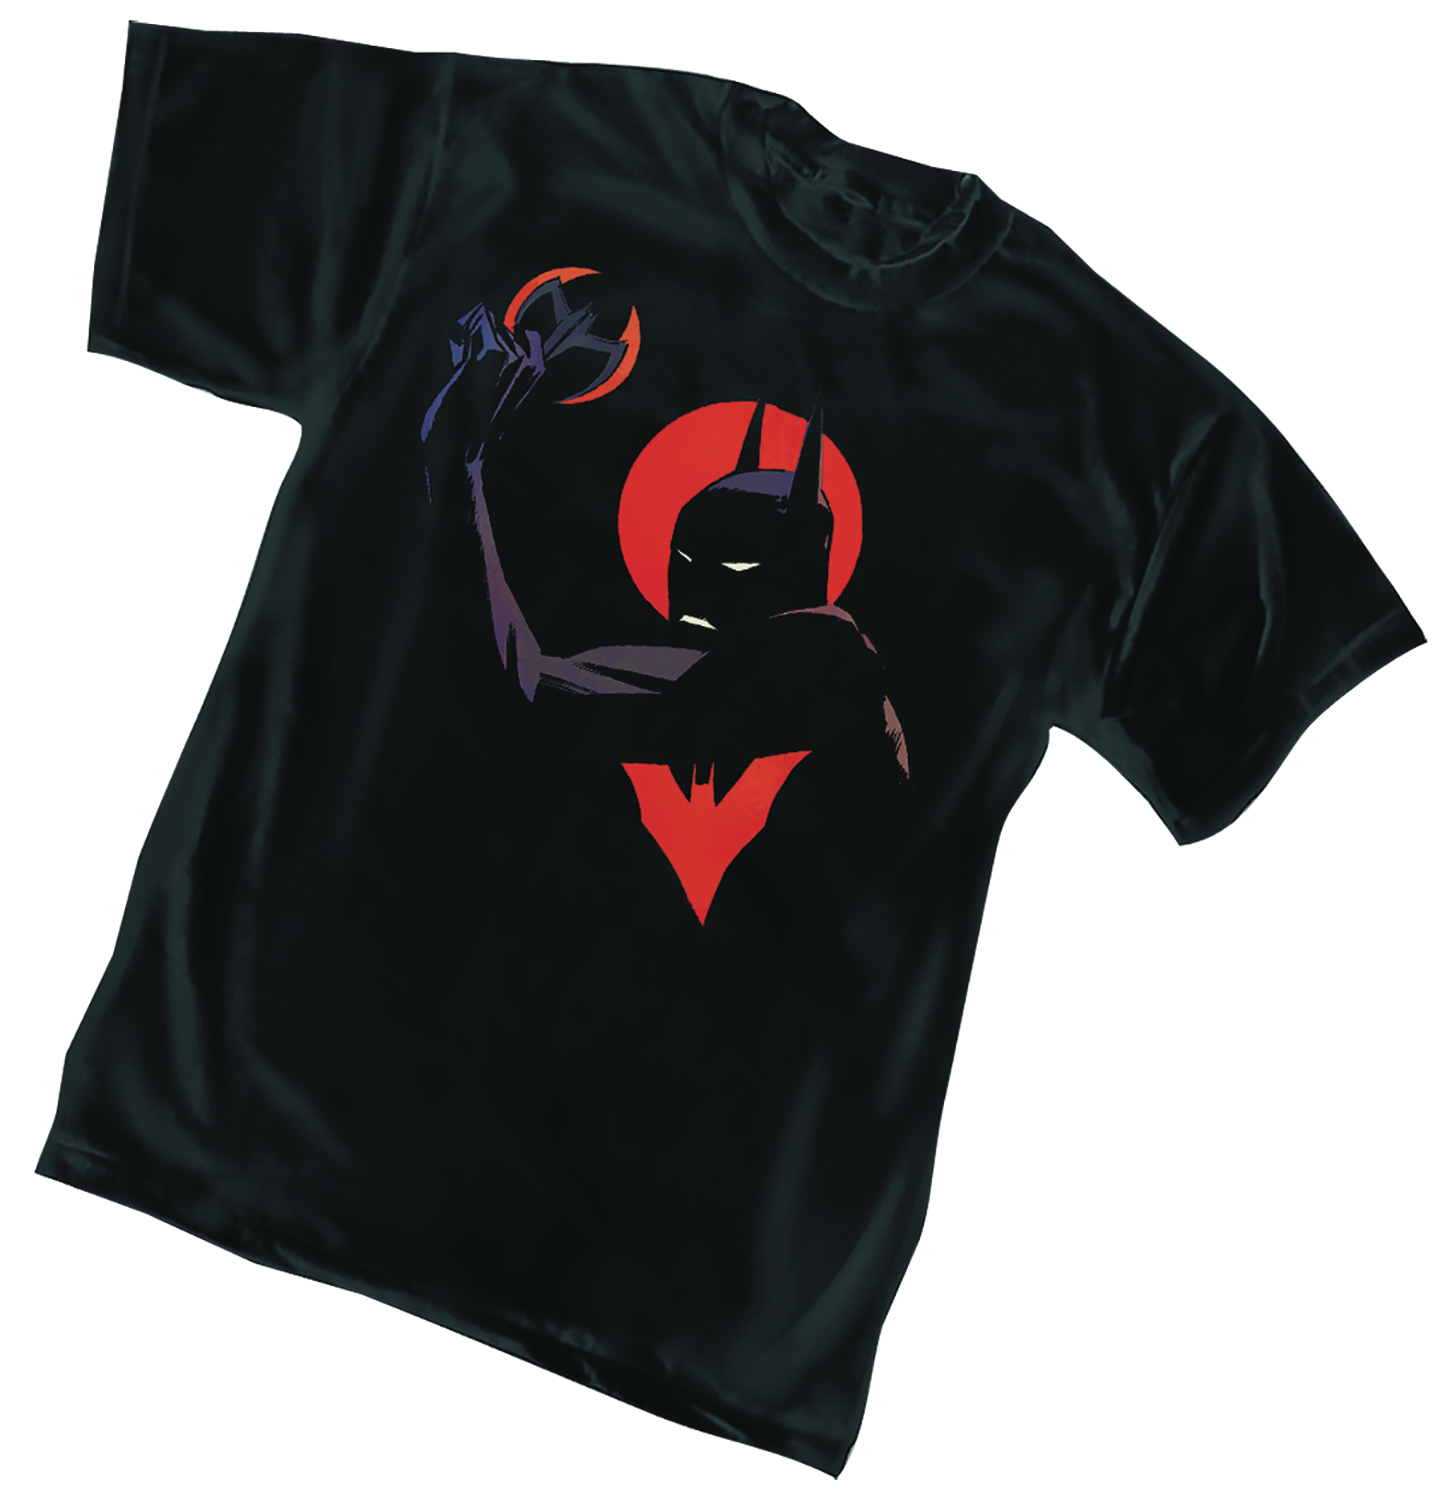 BATMAN BEYOND SHADOWS T/S LG